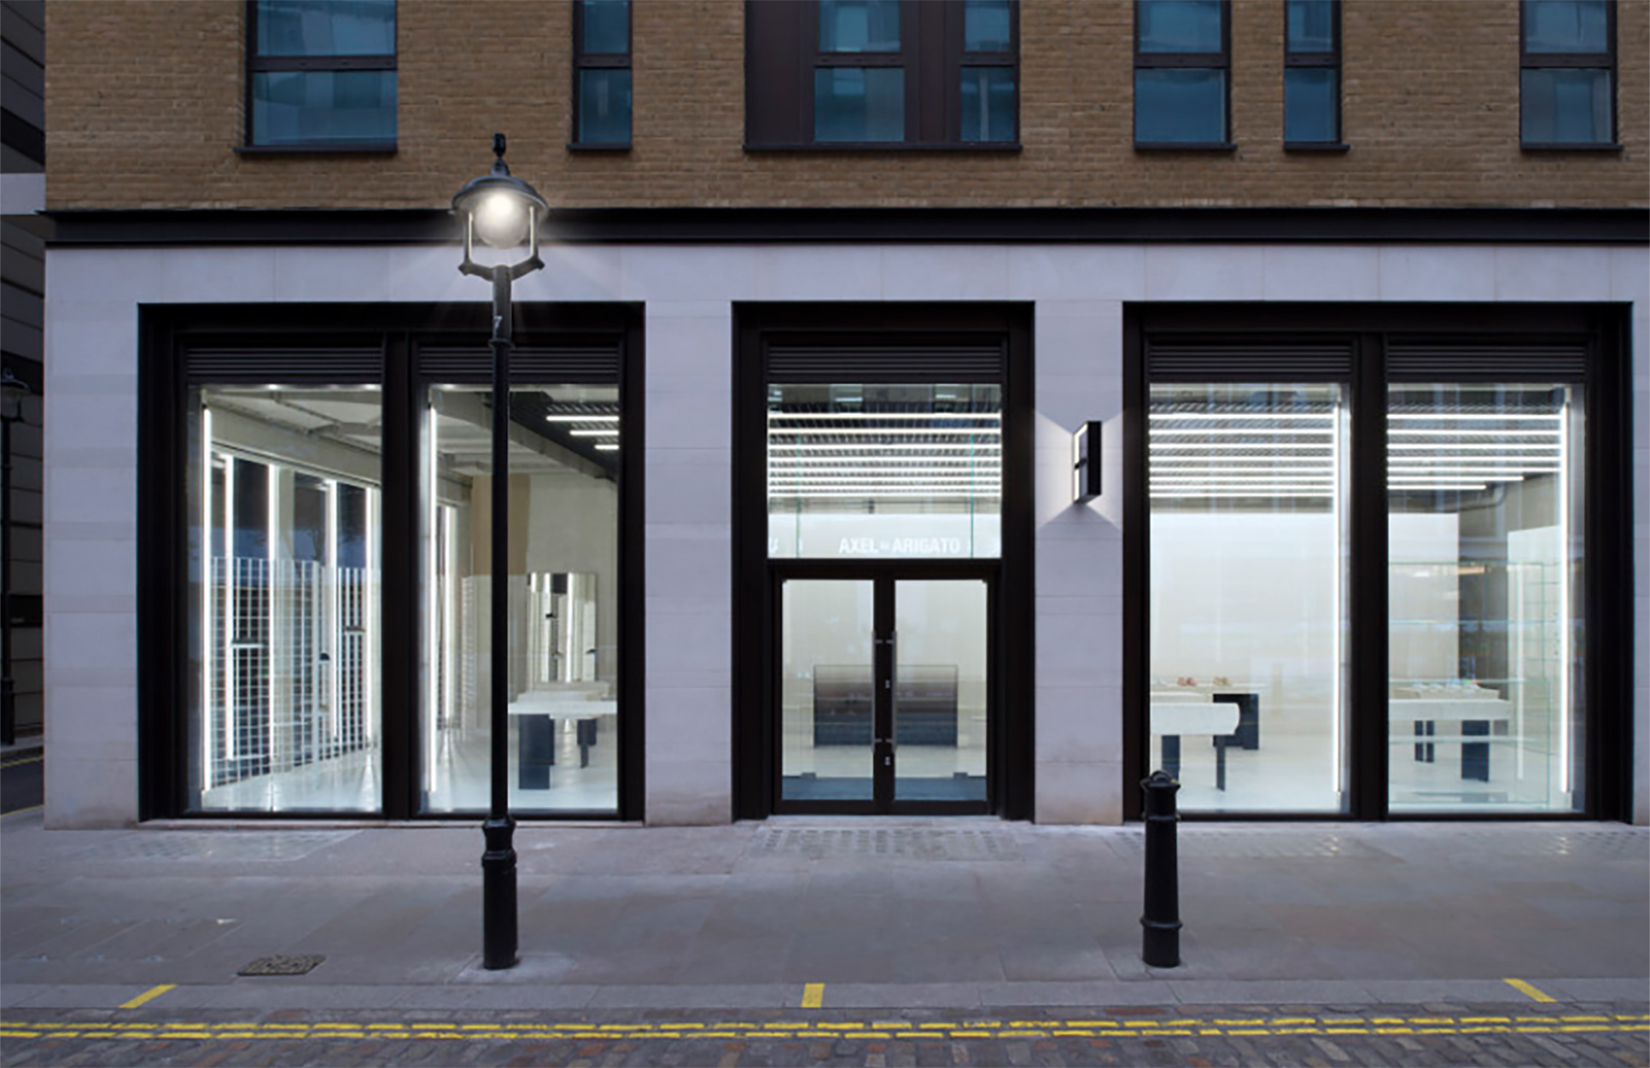 b3f1bef1e1 Footwear brand Axel Arigato opens a  gallery  in London s Soho - The ...